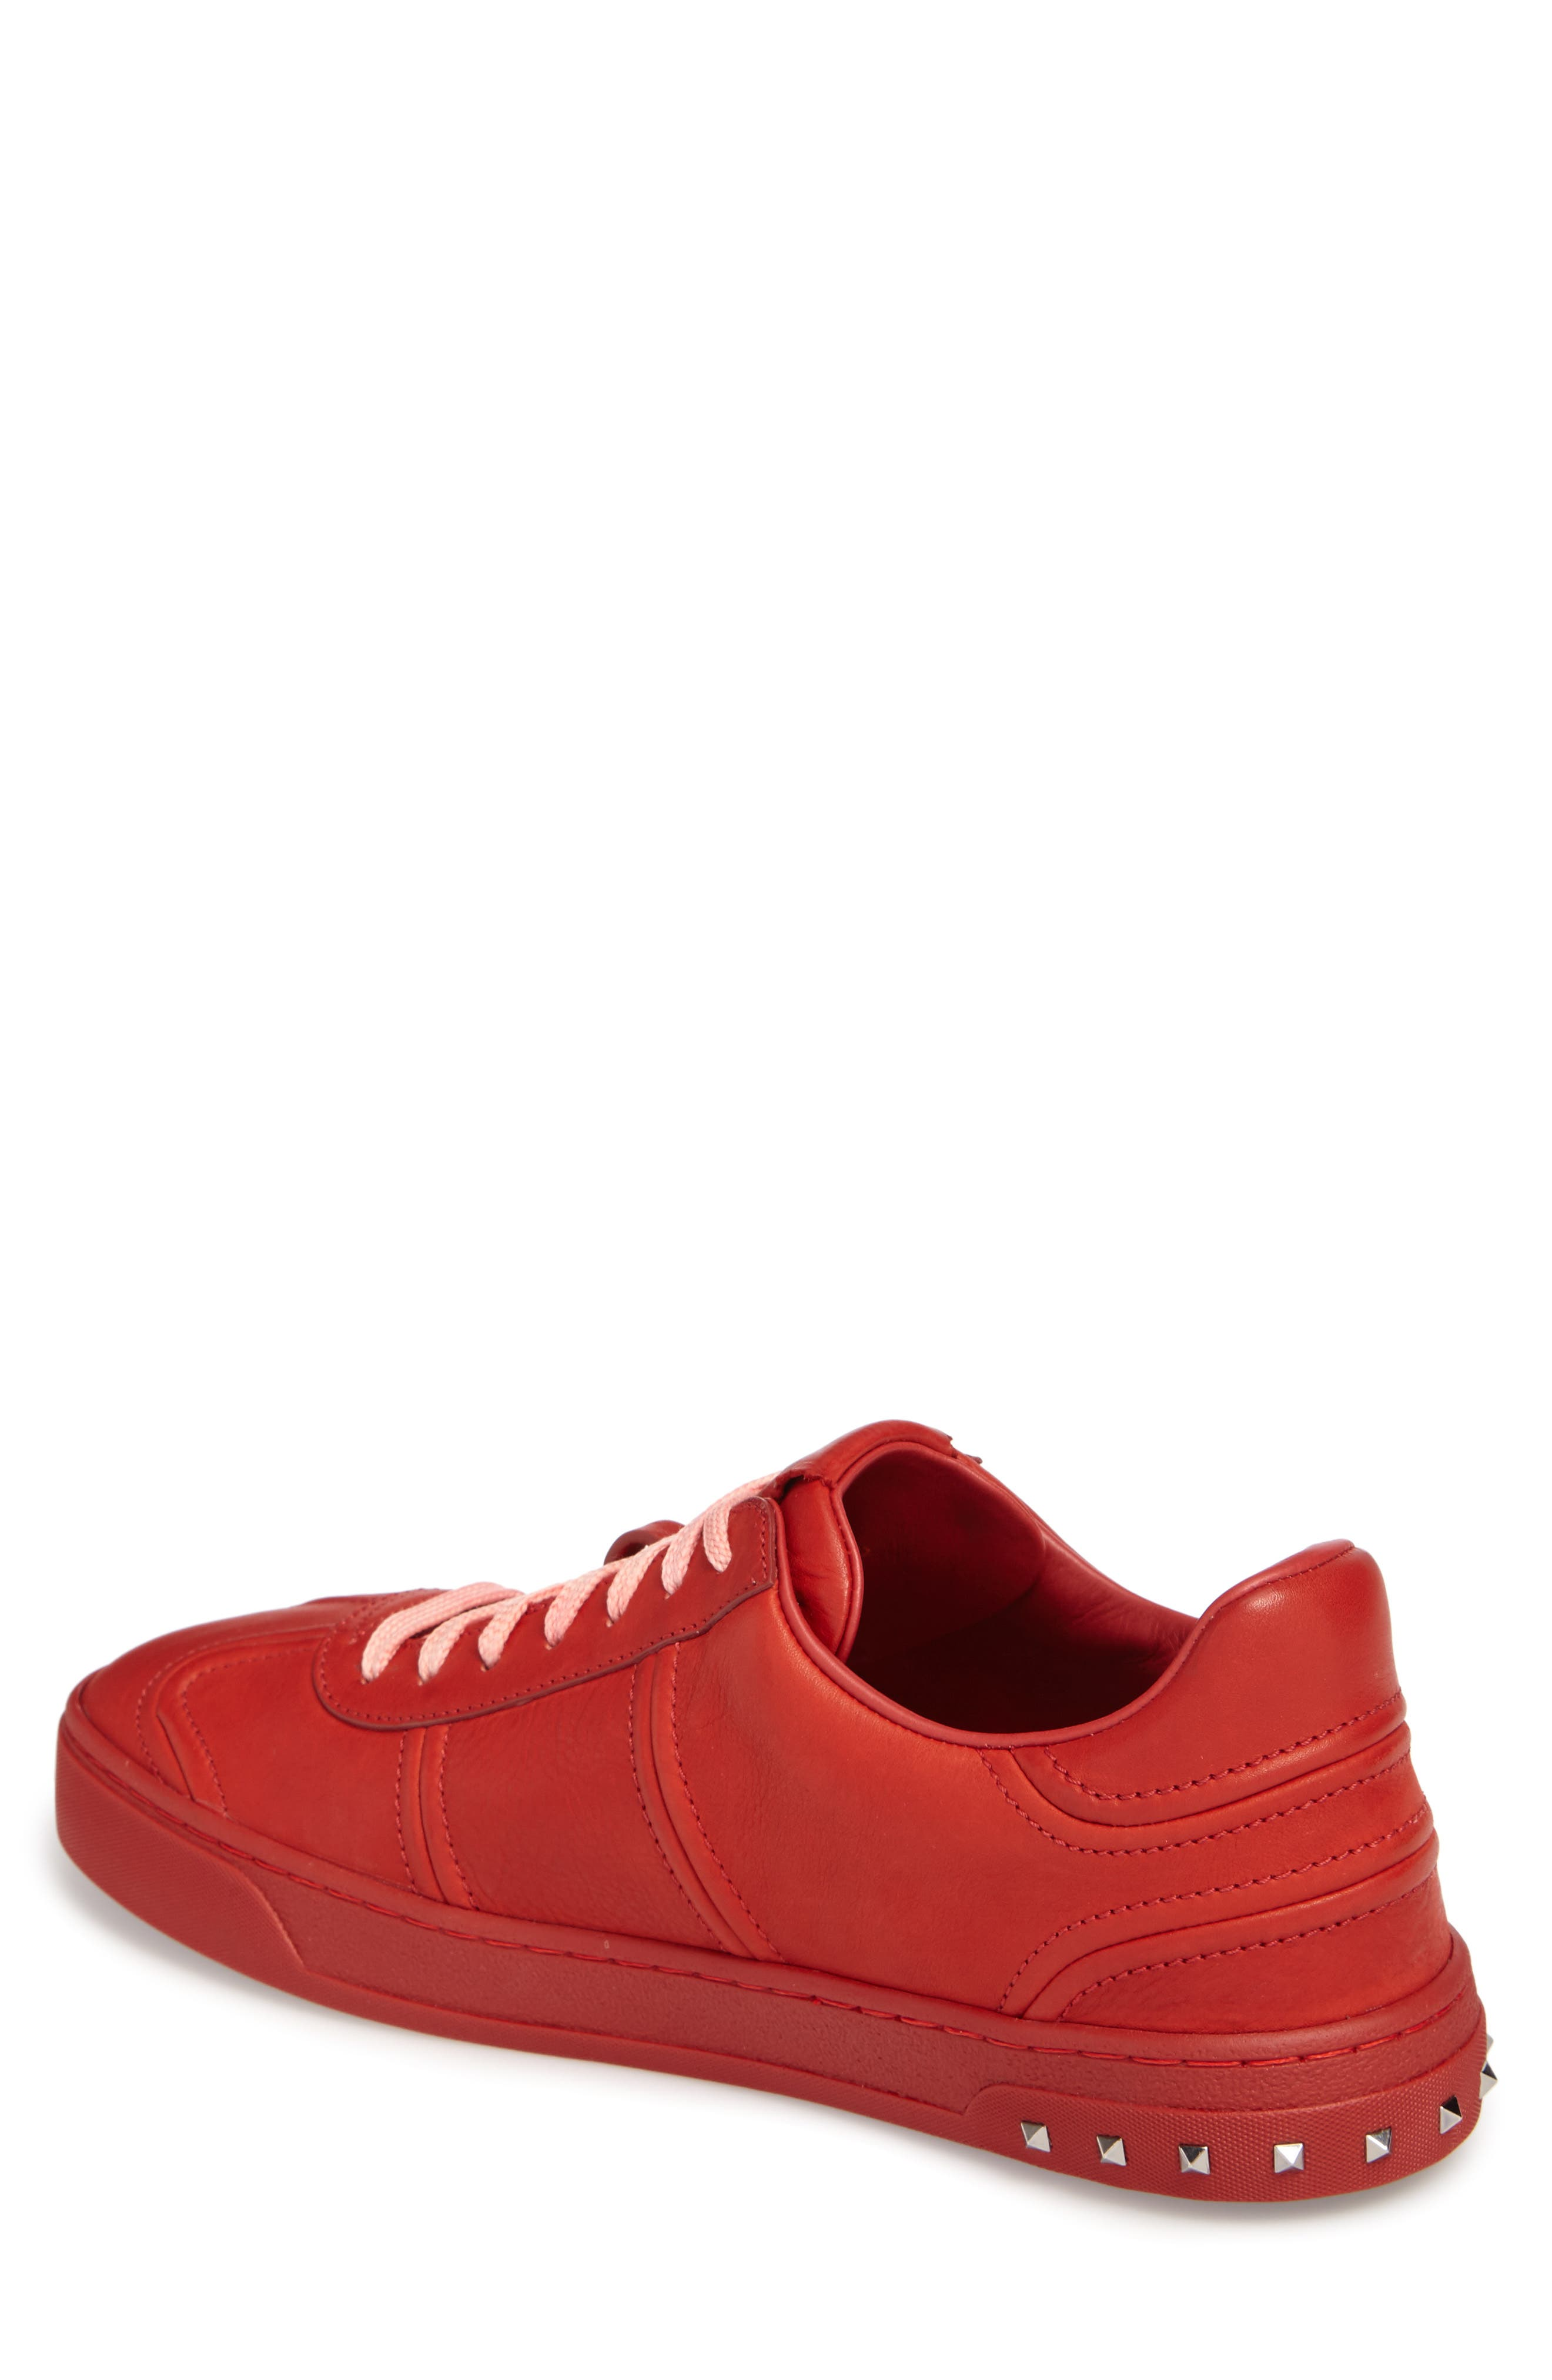 Fly Crew Sneaker,                             Alternate thumbnail 2, color,                             Rosso